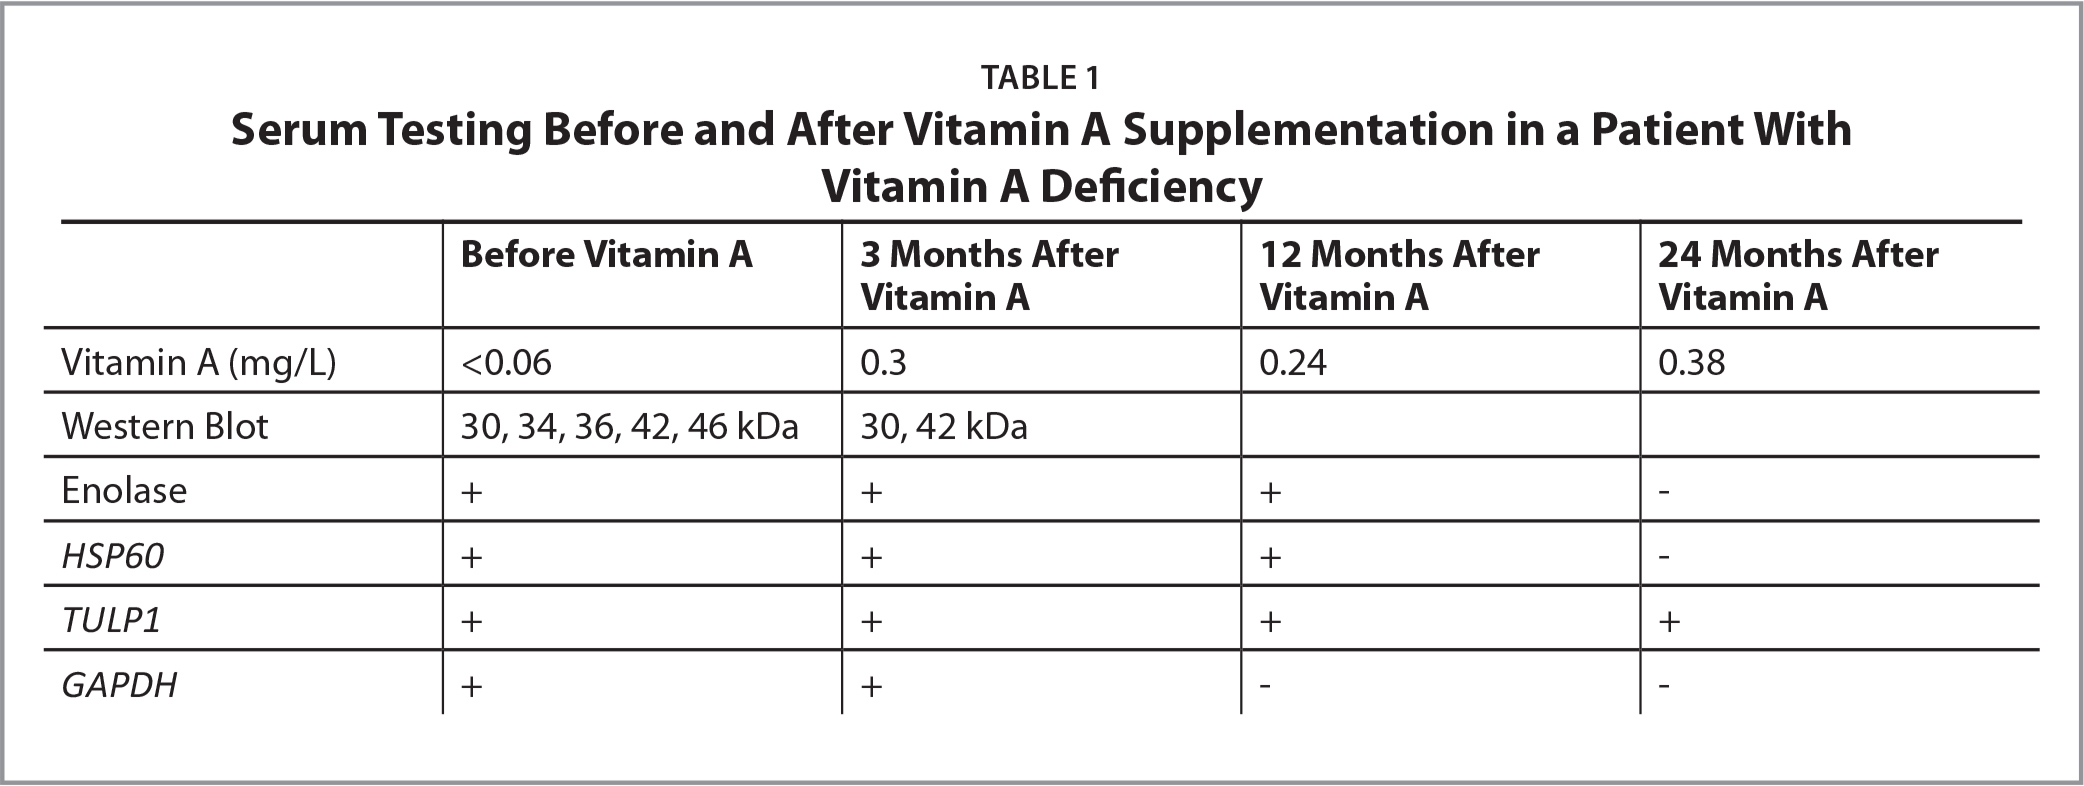 Serum Testing Before and After Vitamin A Supplementation in a Patient With Vitamin A Deficiency